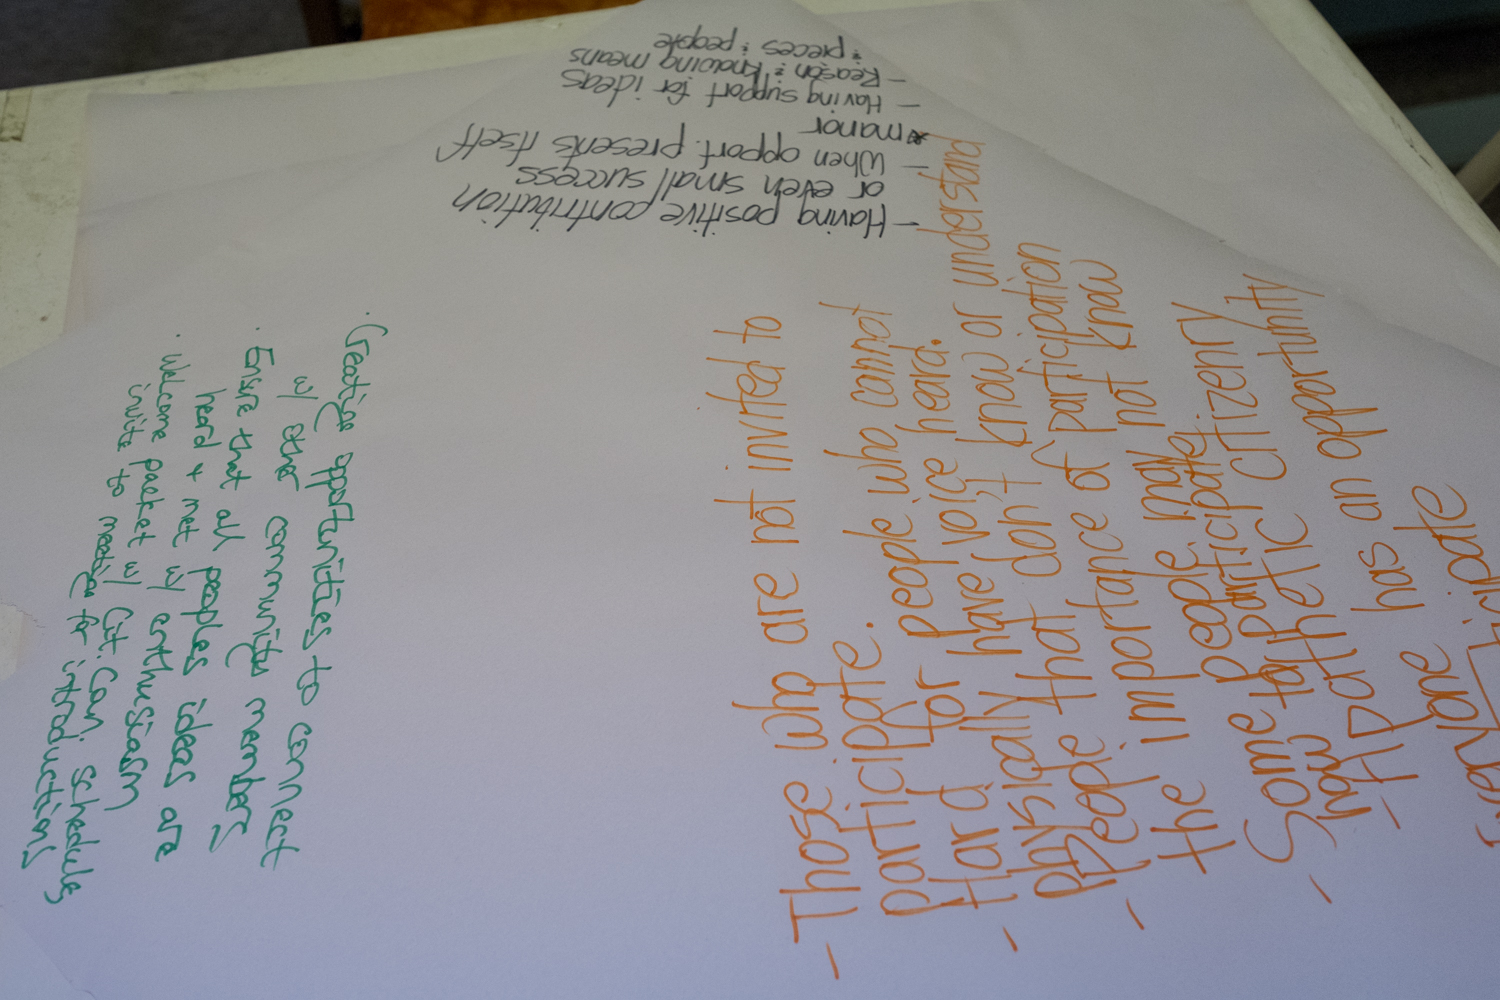 With paper placed at each table, notes from community conversations were recorded by citizens.